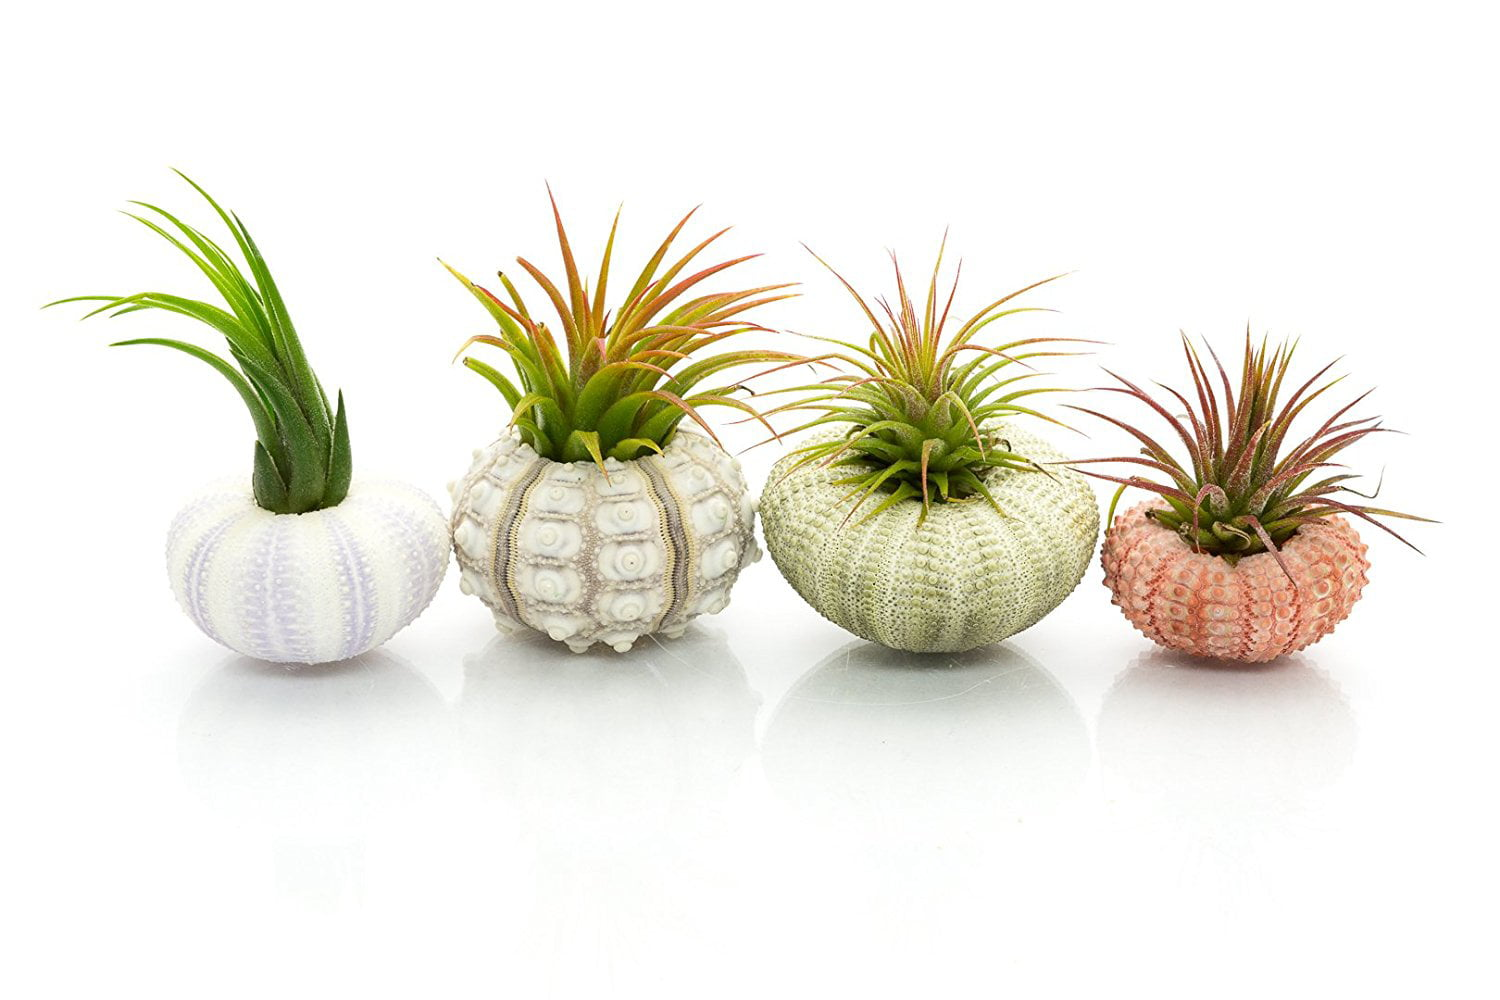 4 Pack Varieties of Sea Urchins with Tillandsia Gift Set TM Nautical Crush Trading Urchin Air Plant Assortment